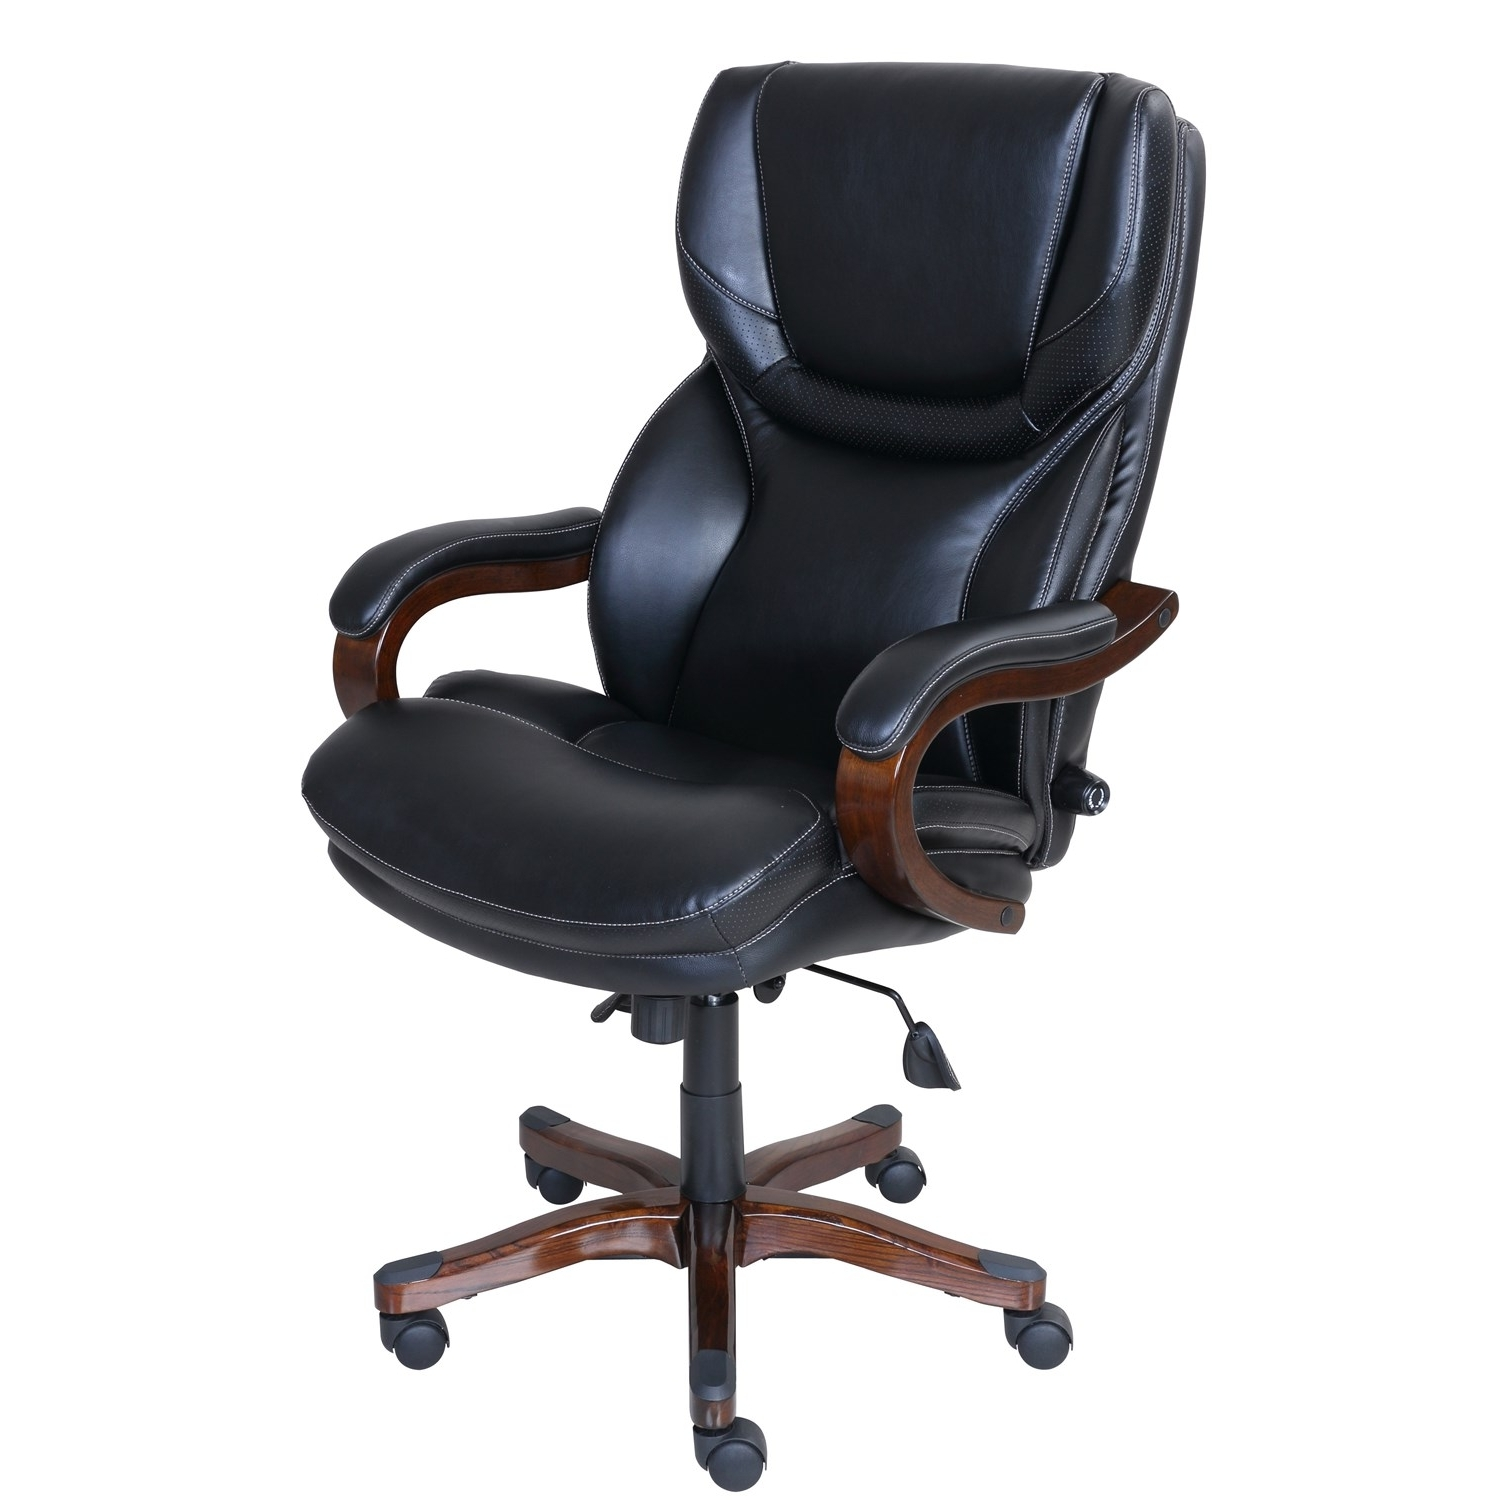 Serta At Home 46859 Executive Office Chair In Black With Bonded With Regard To Well Liked Premium Executive Office Chairs (View 17 of 20)